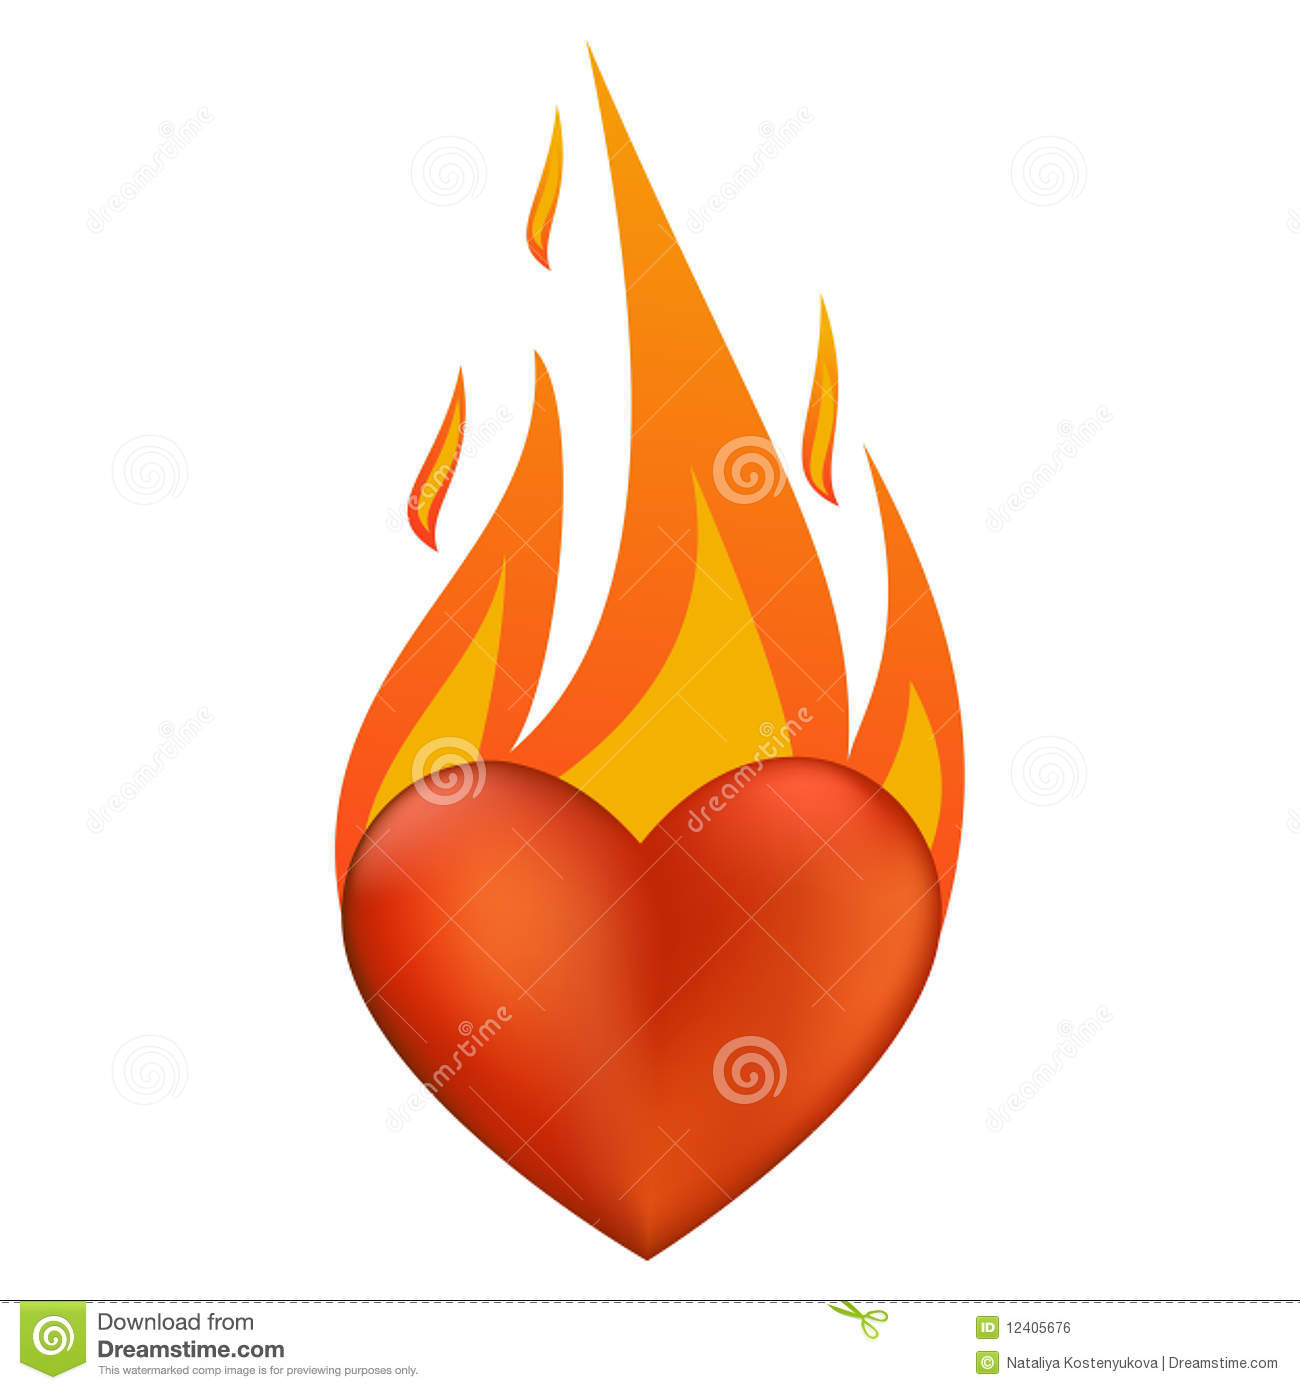 Flaming Heart Royalty Free Stock Image - Image: 12405676